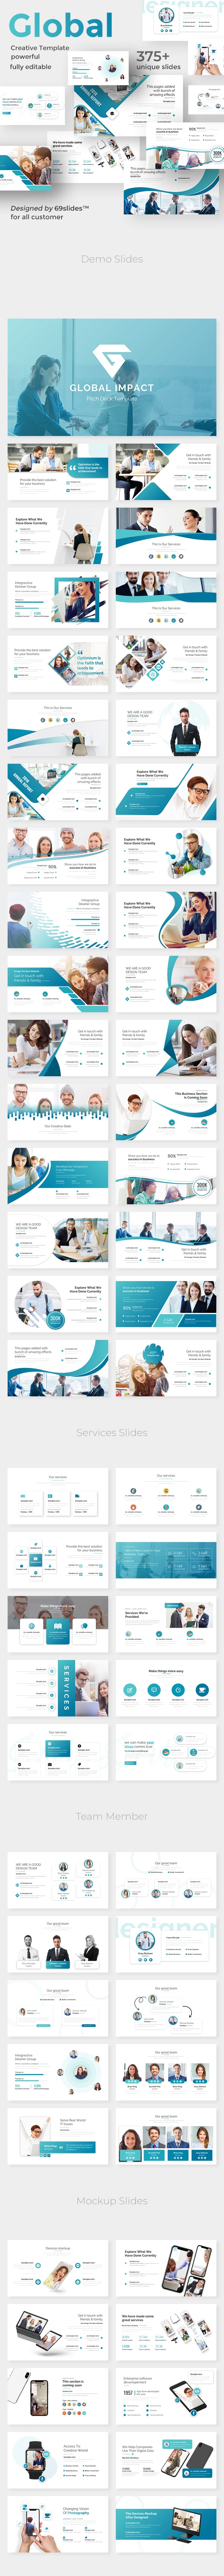 Global Impact Pitch Deck Powerpoint Template - Business PowerPoint Templates